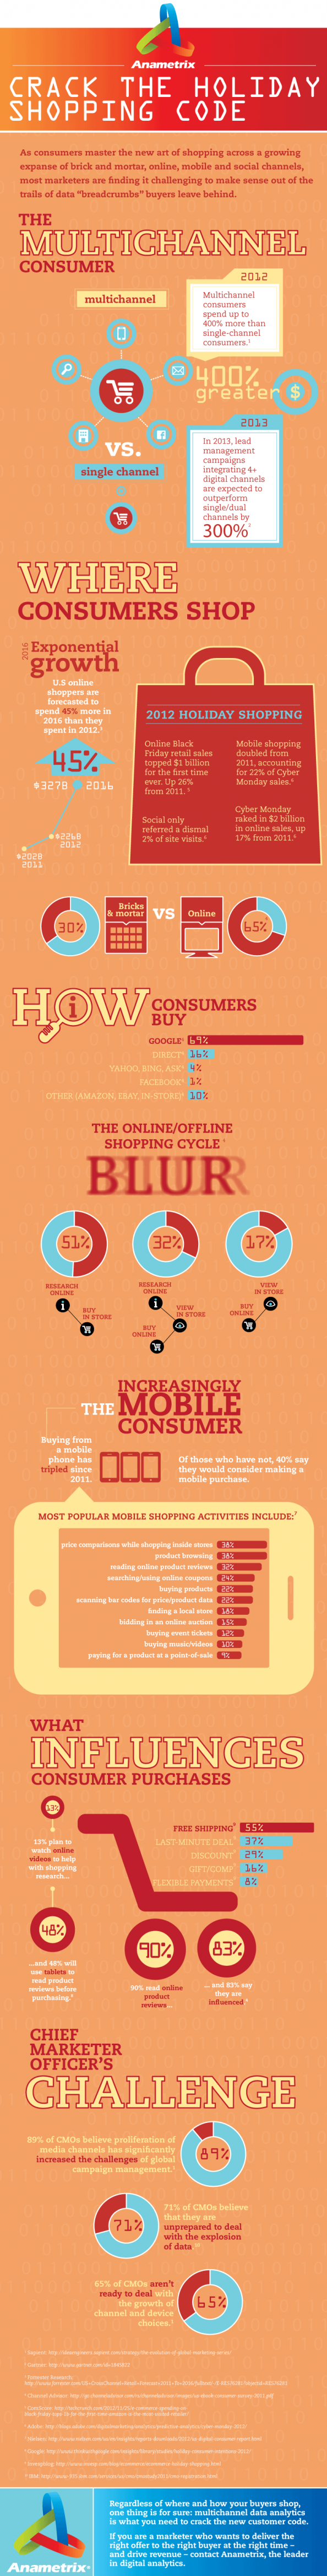 Crack the Holiday Shopping Code  Infographic